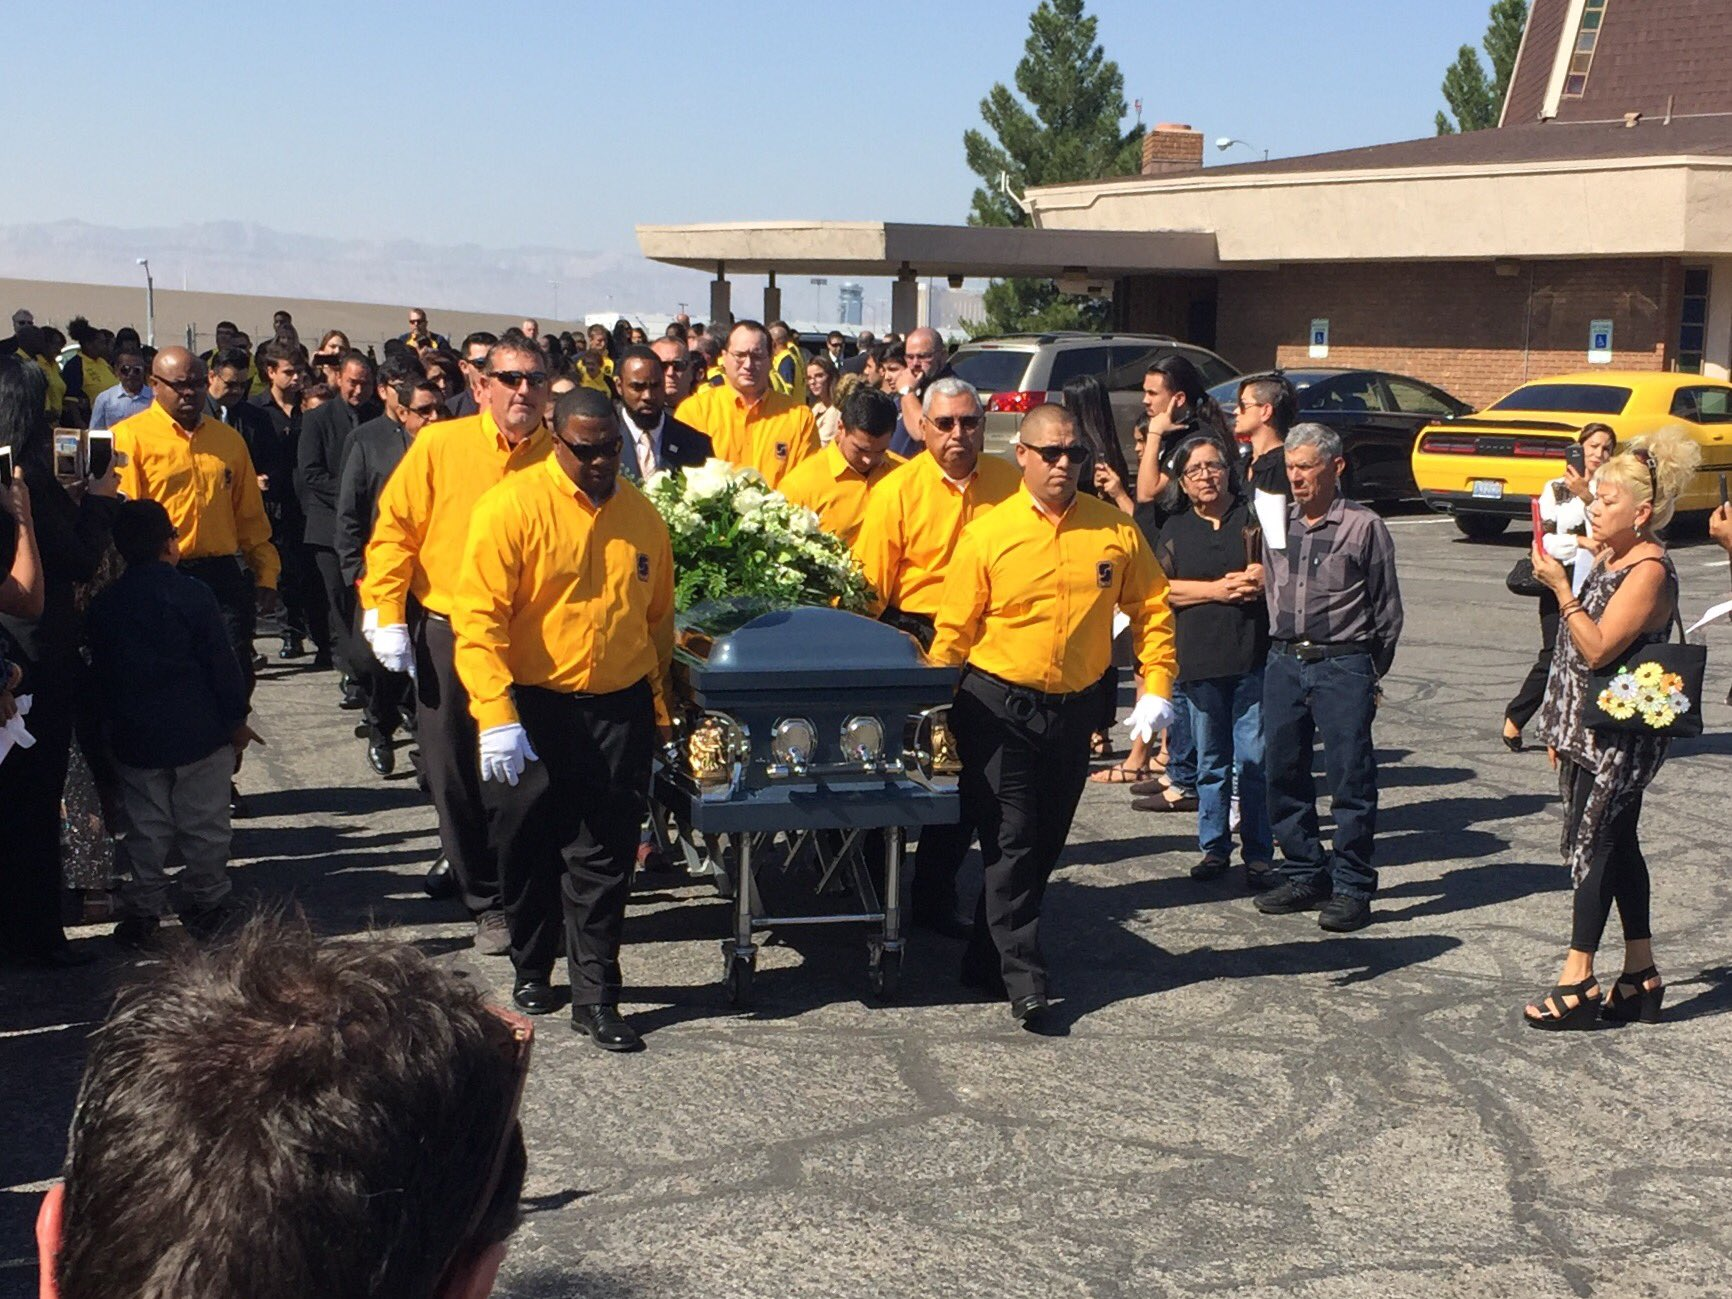 Erick Silva, 21, was laid to rest on Oct. 12 after he was shot and killed in the '1 October' Las Vegas shooting where he was working as a security guard. His mother asked his coworkers to come in uniform to the funeral. (Denise Rosch | KSNV)